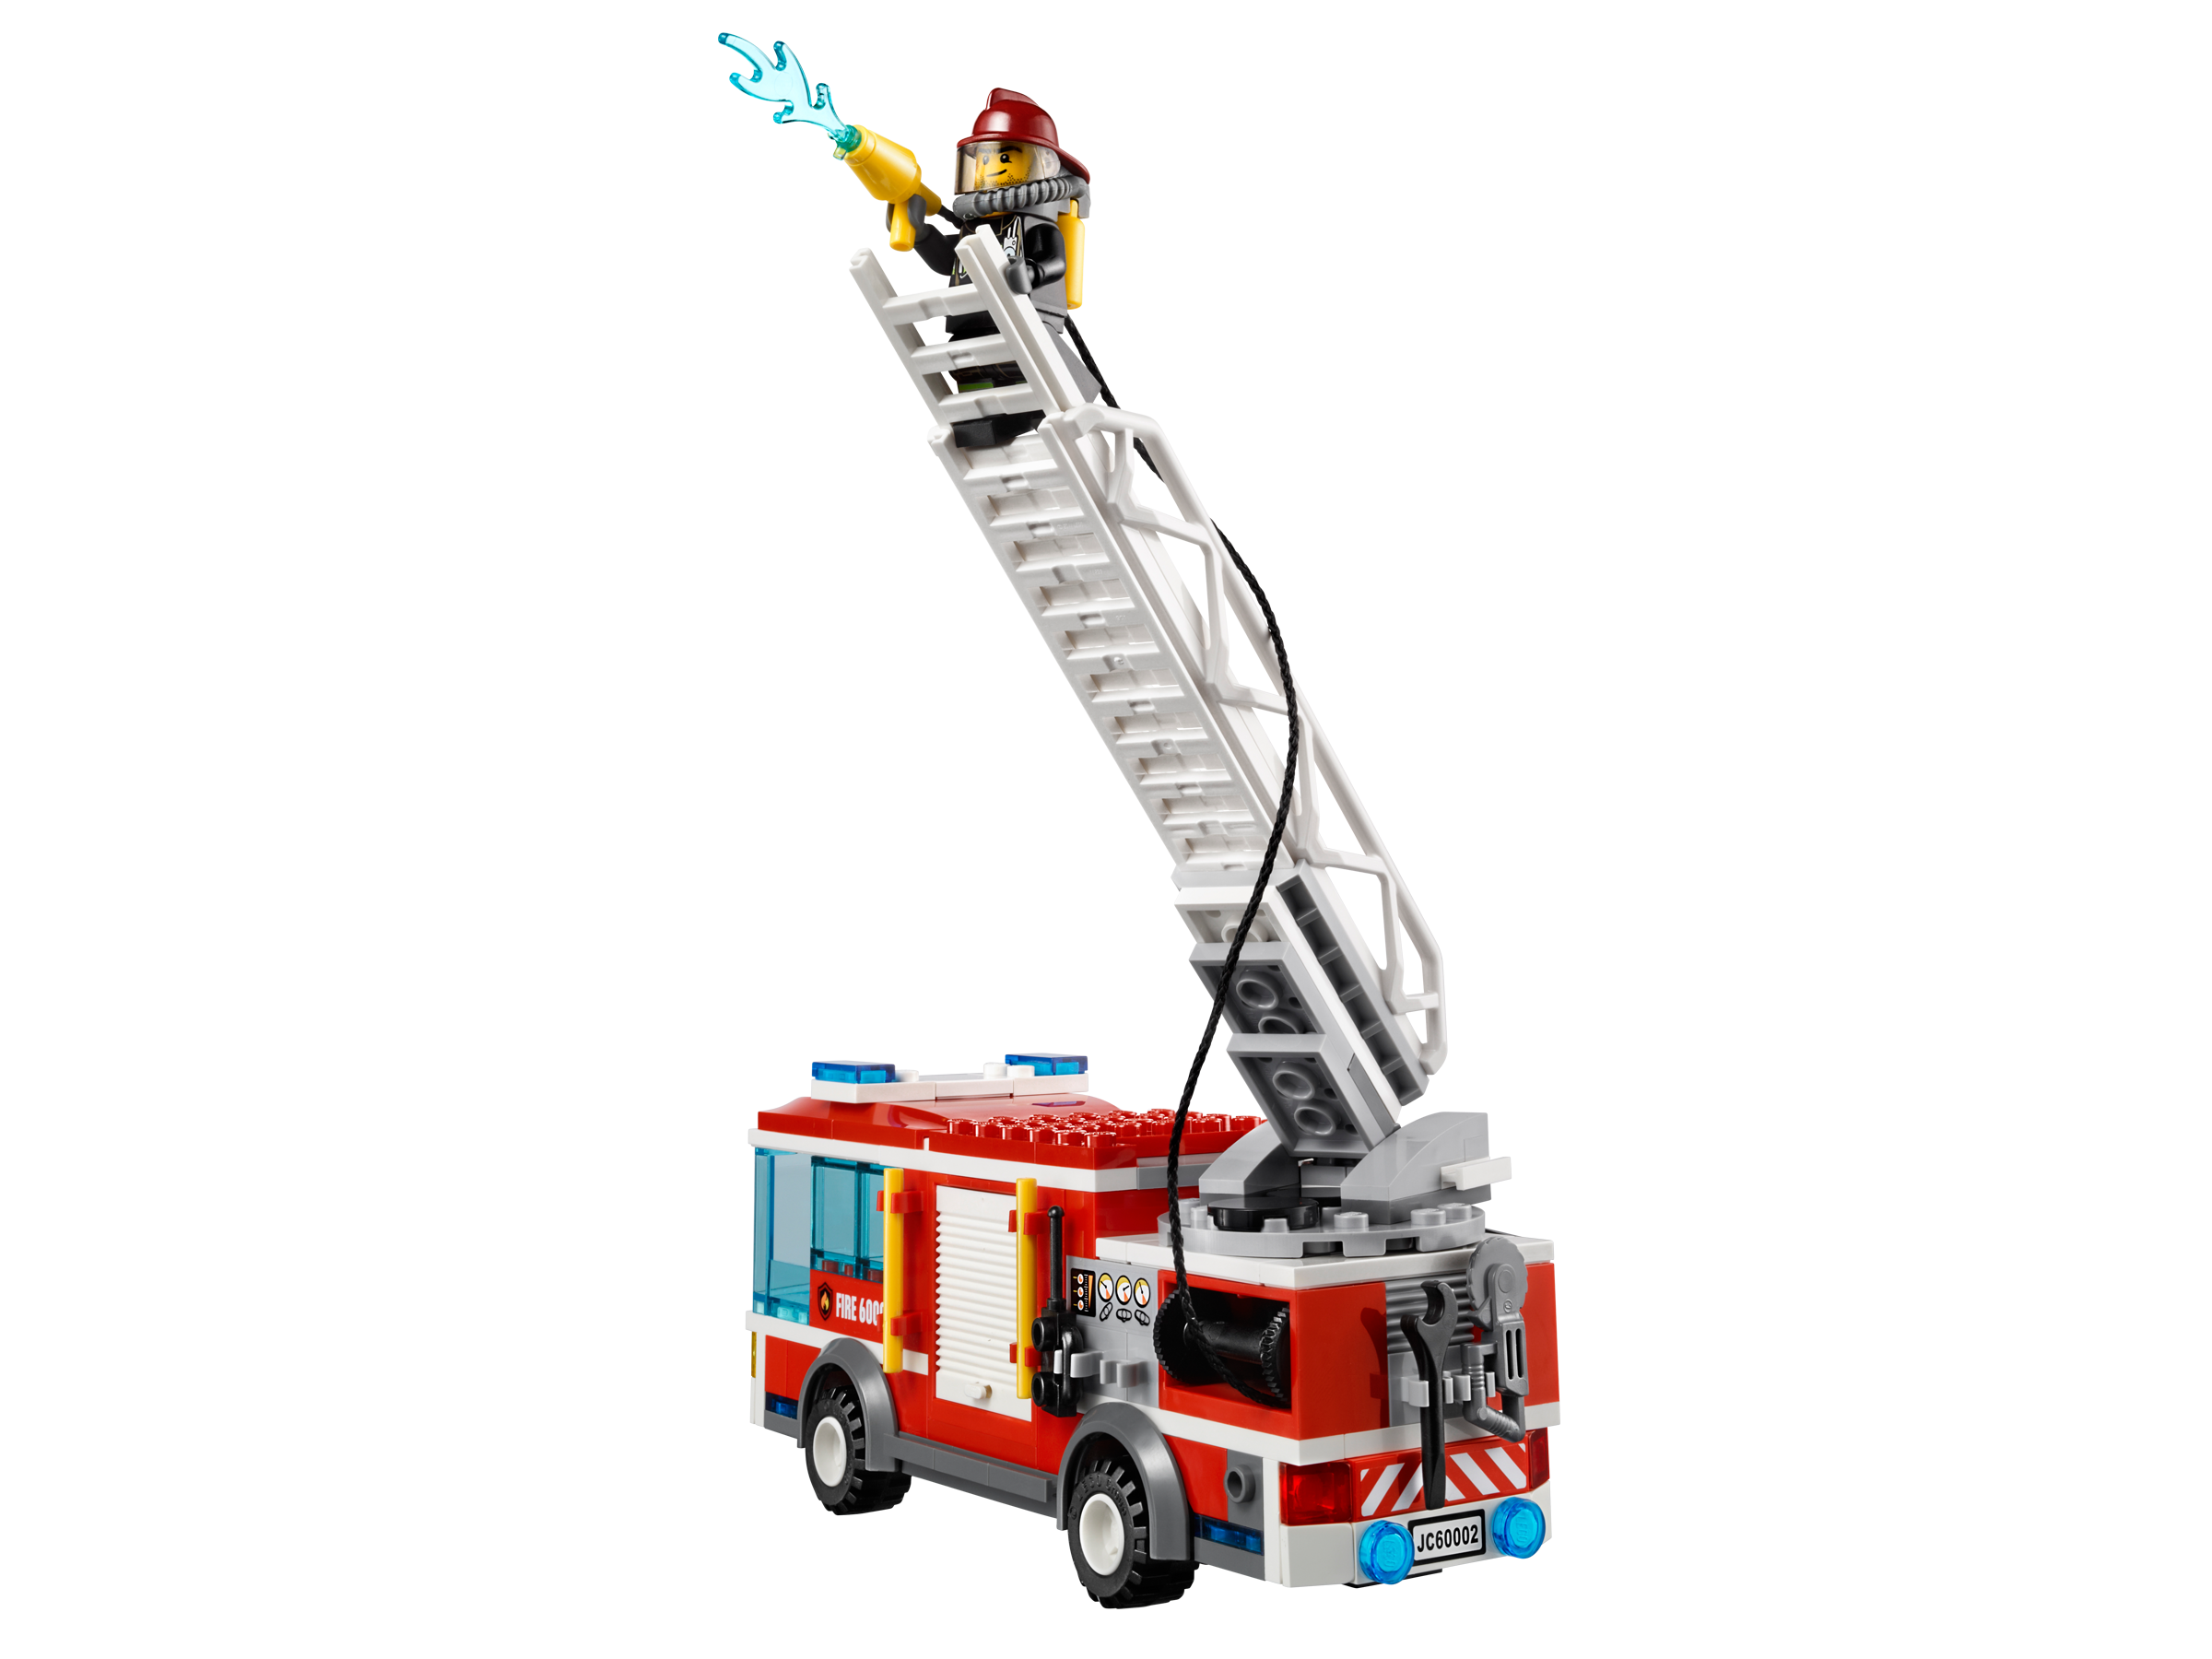 Fire ladder png. Chicago lego city